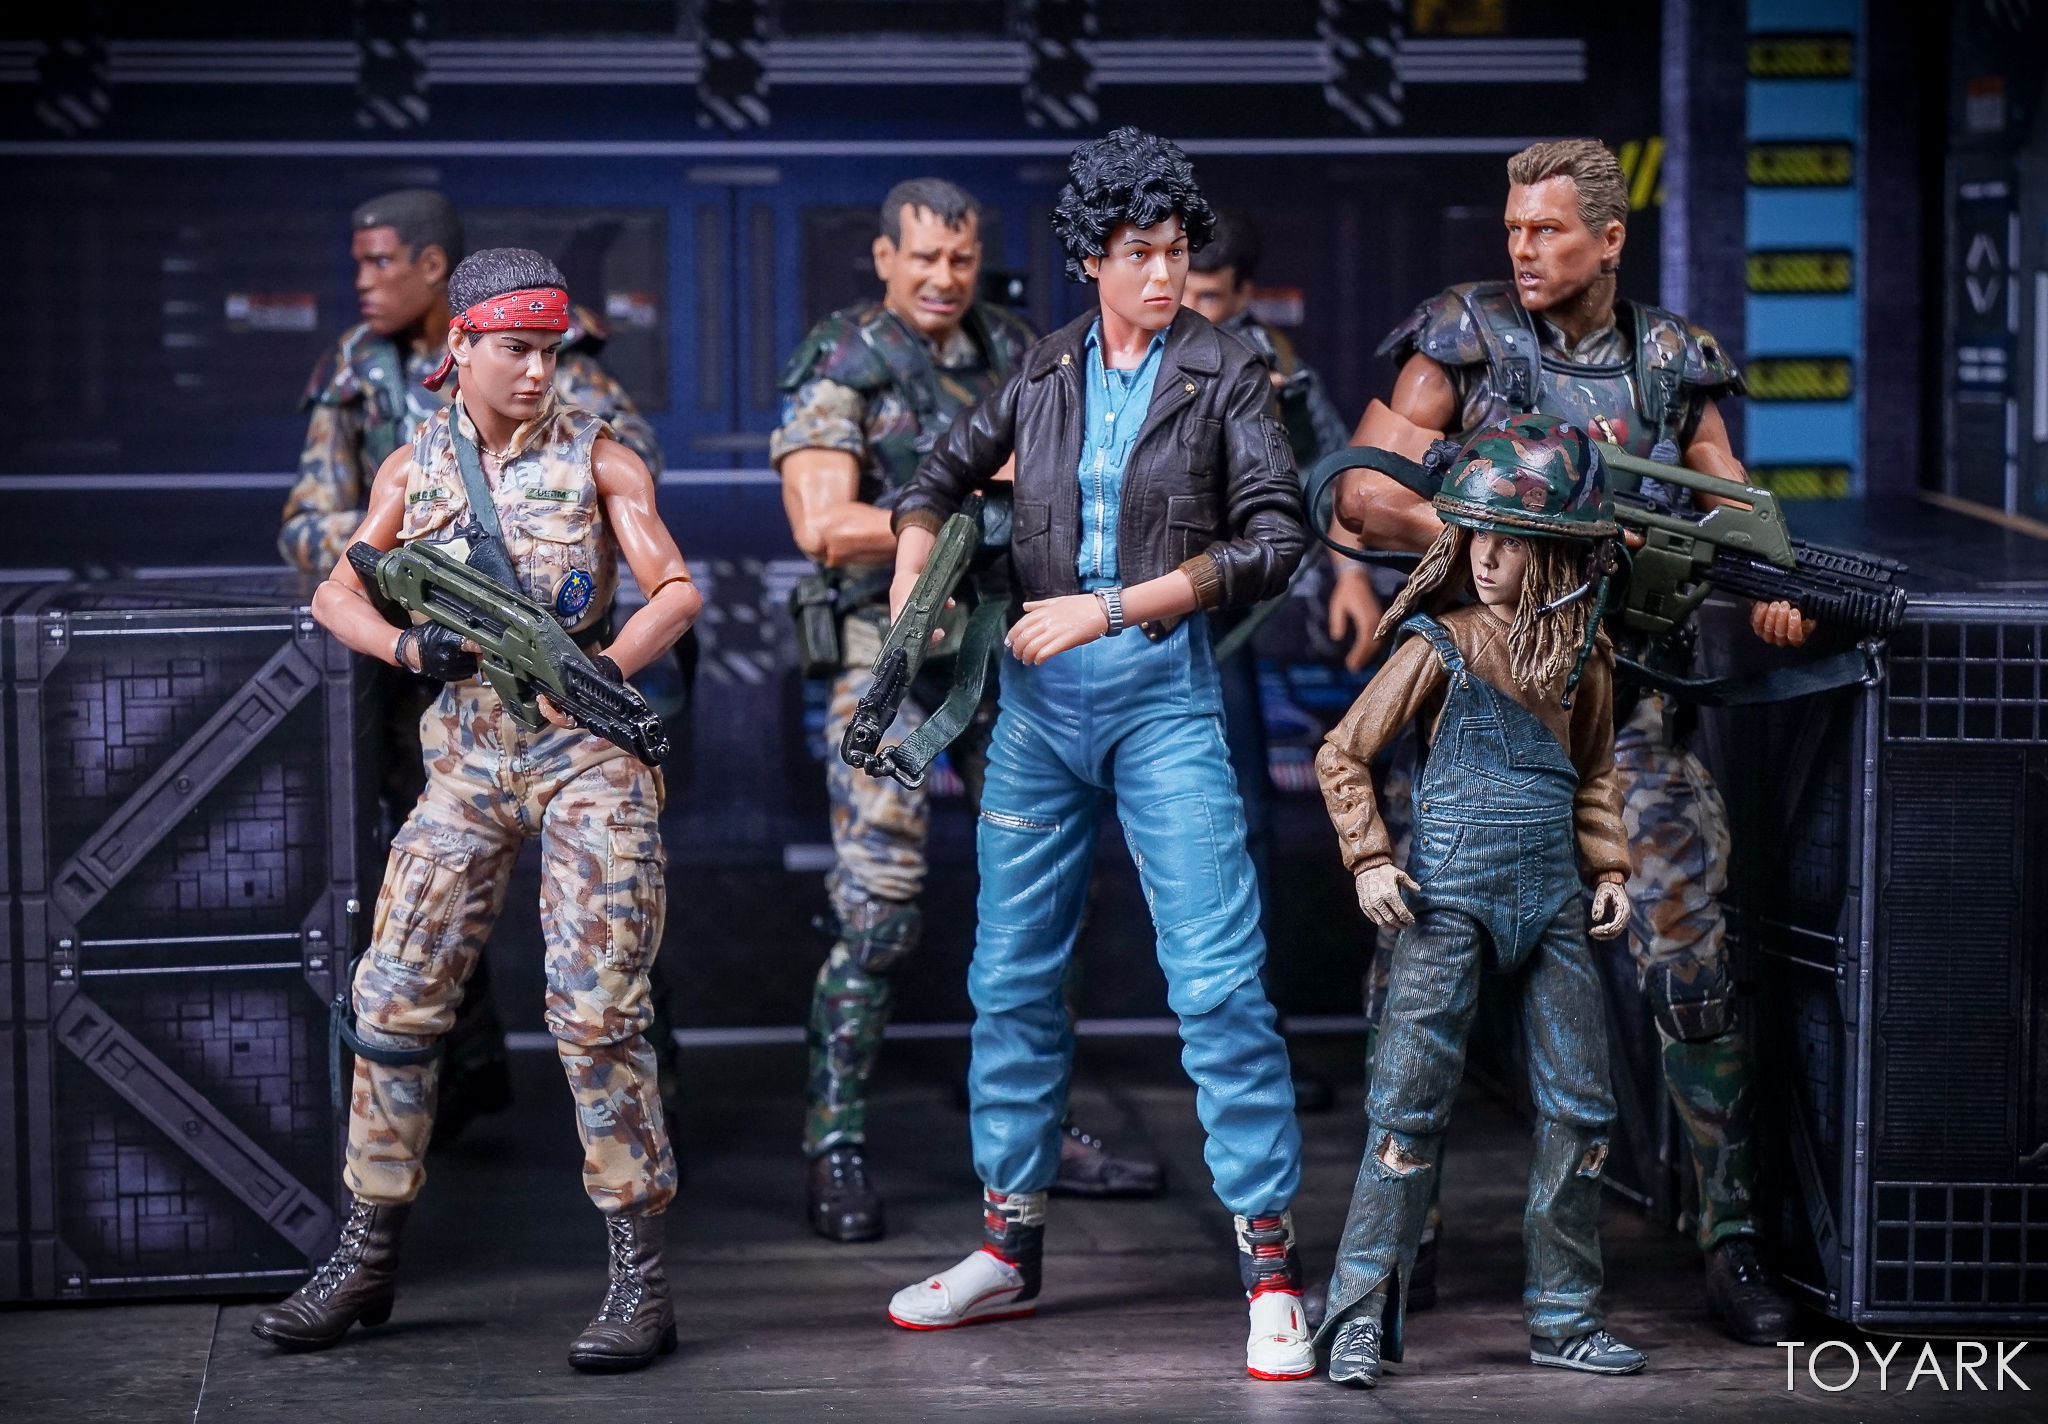 http://news.toyark.com/wp-content/uploads/sites/4/2017/10/NECA-Aliens-Series-12-Figures-043.jpg